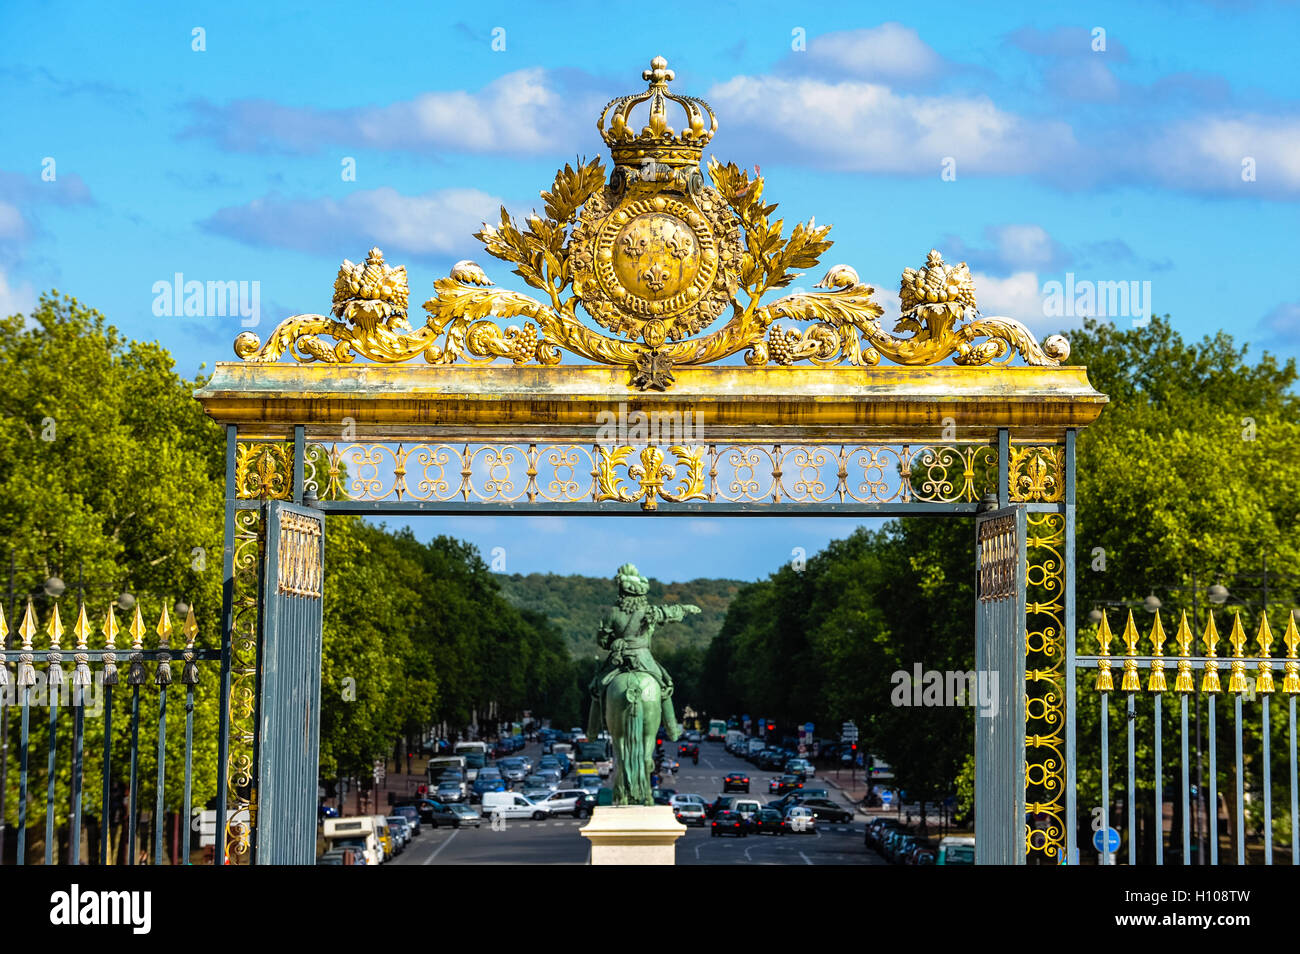 The Palace of Versailles, or simply Versailles, is a royal château close to Paris, France. Equestrian statue - Stock Image